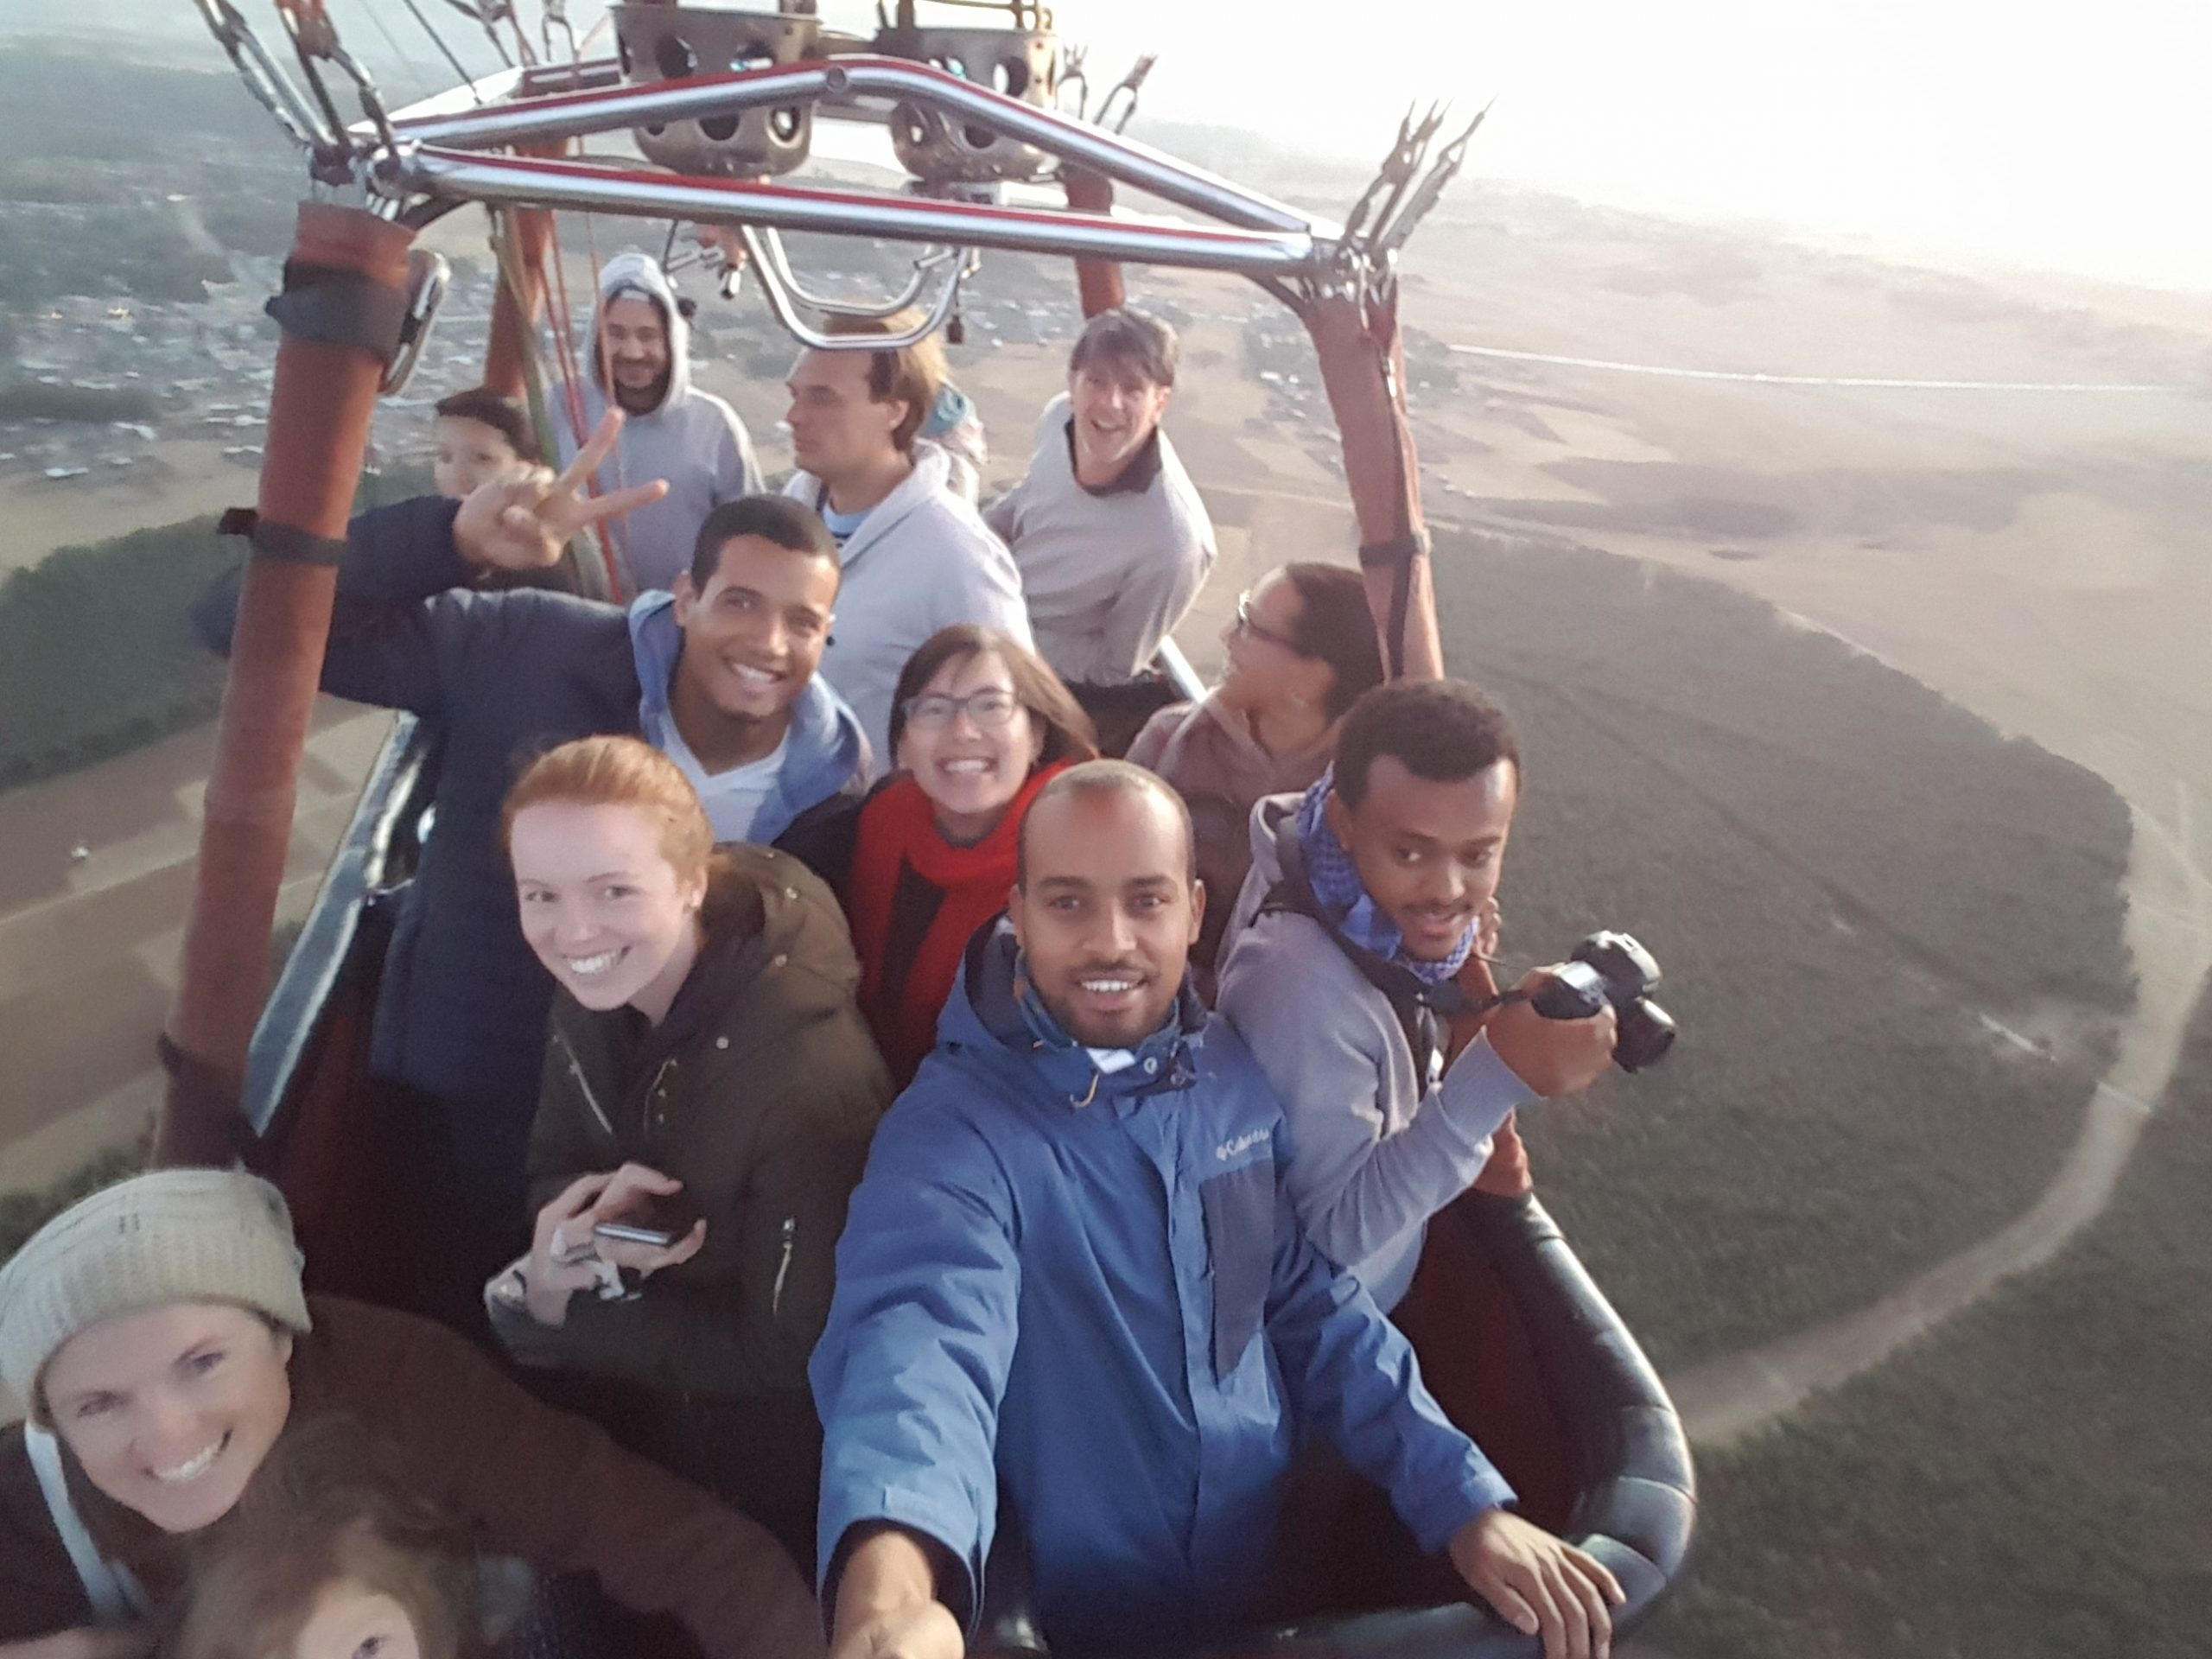 Sunrise balloon flight Addis Ababa Saturday 3 April 2021